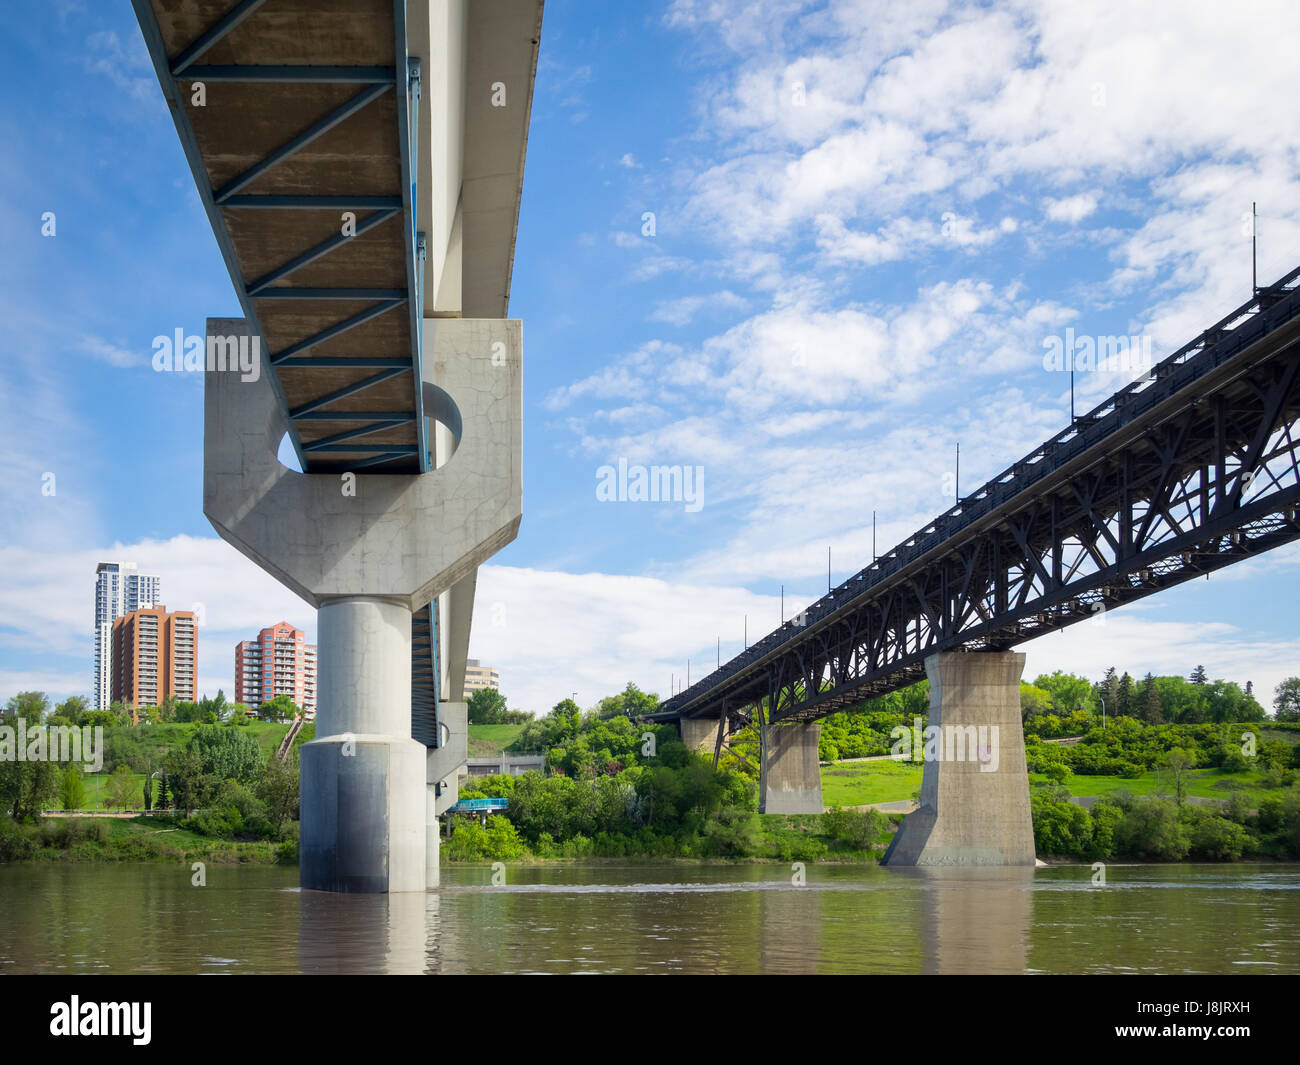 The Dudley B. Menzies Bridge (left) and High Level Bridge in Edmonton, Alberta, Canada, as seen from a boat on the - Stock Image